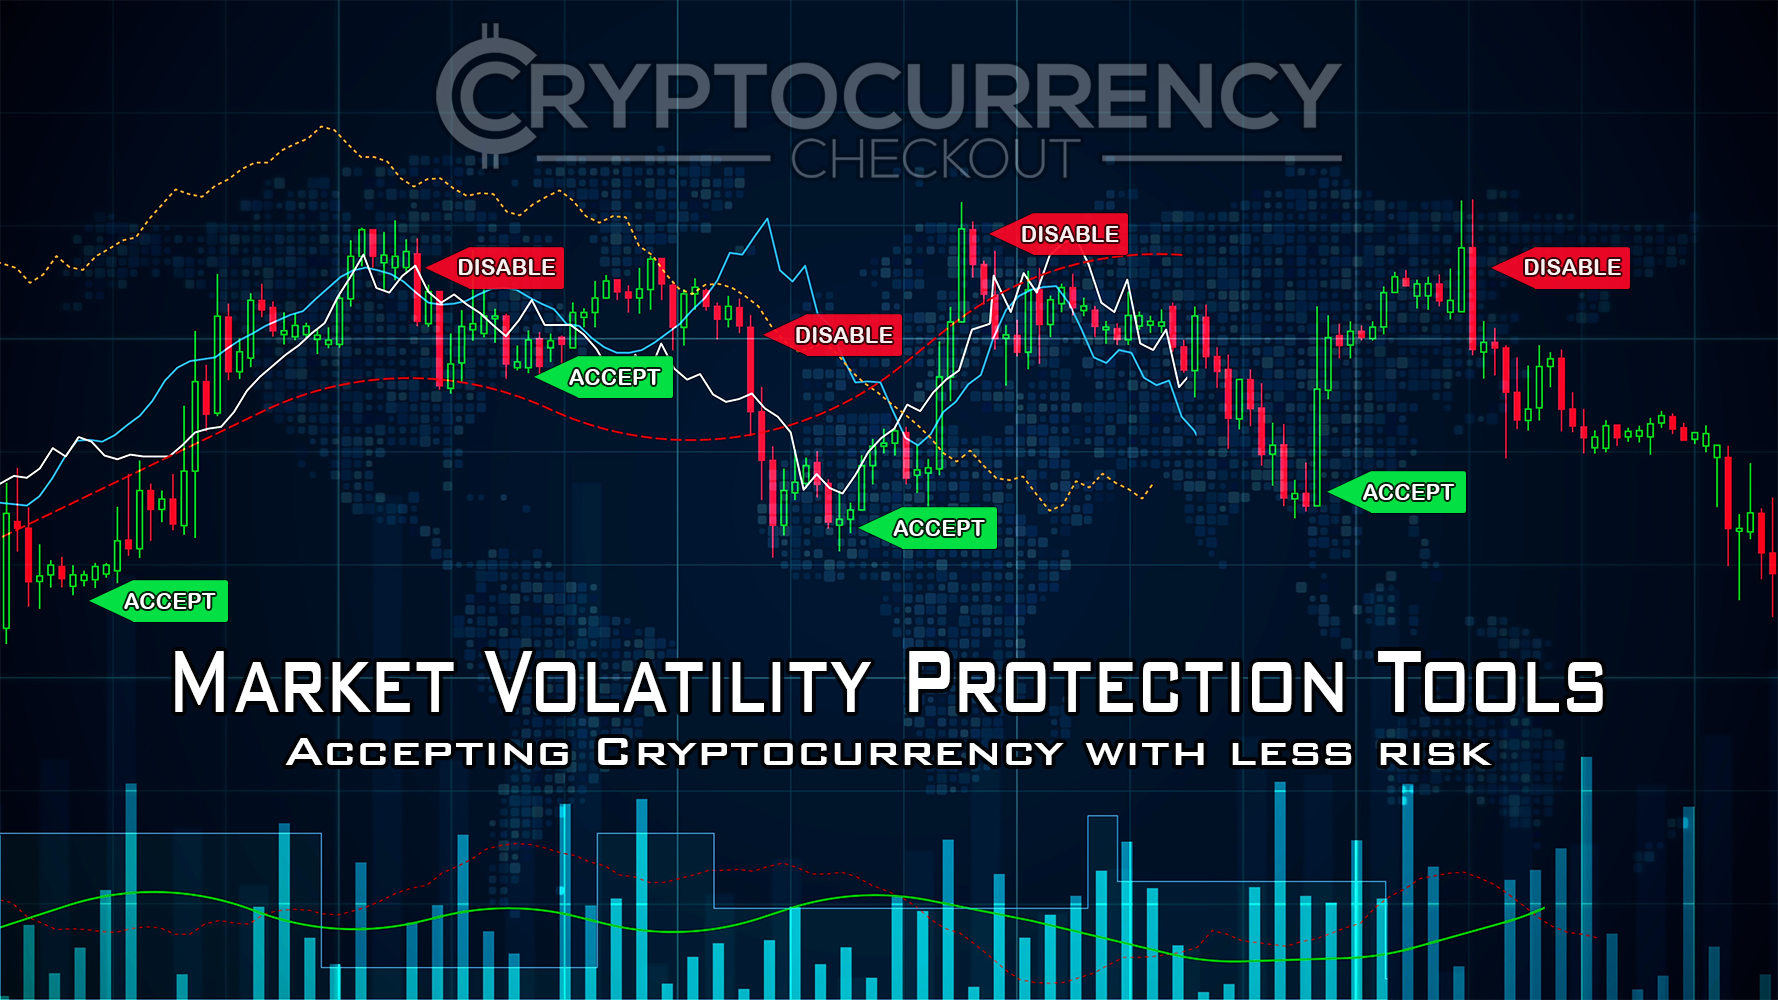 Cryptocurrency Market Volatility Protection Tools